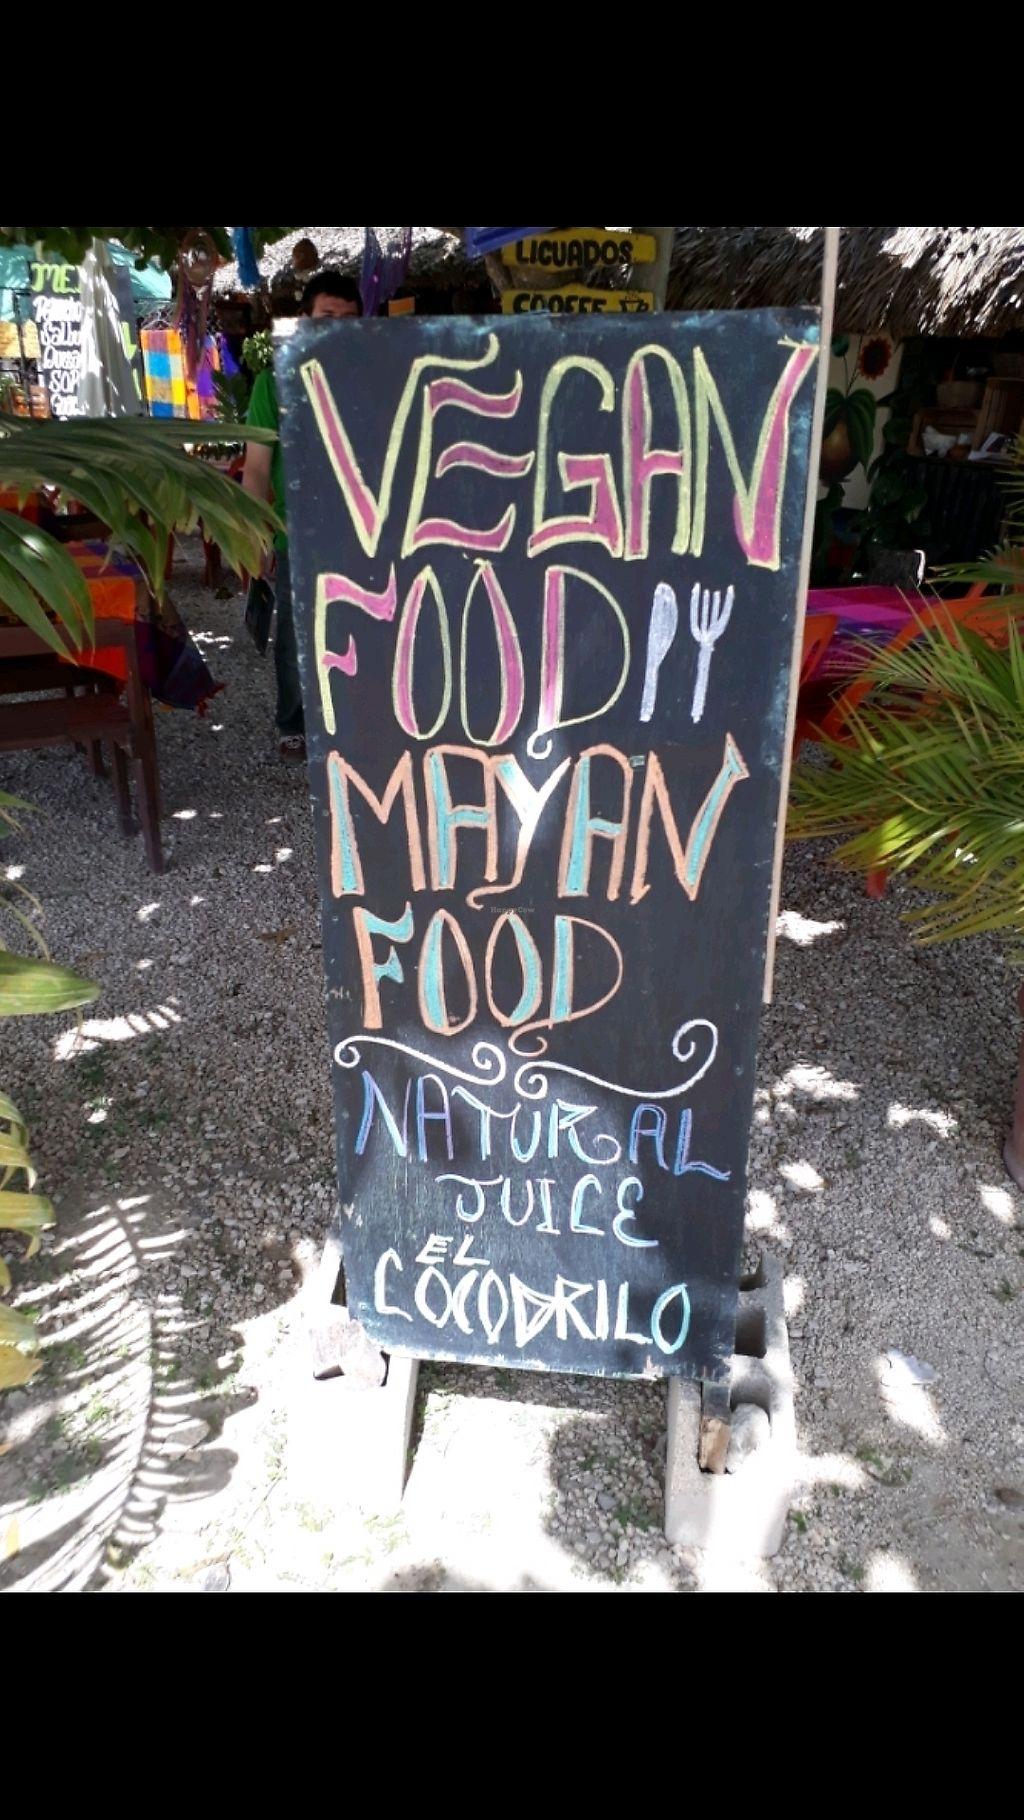 "Photo of El Cocodrilo  by <a href=""/members/profile/Flouw"">Flouw</a> <br/>vegan mayan food <br/> March 5, 2018  - <a href='/contact/abuse/image/111619/367105'>Report</a>"